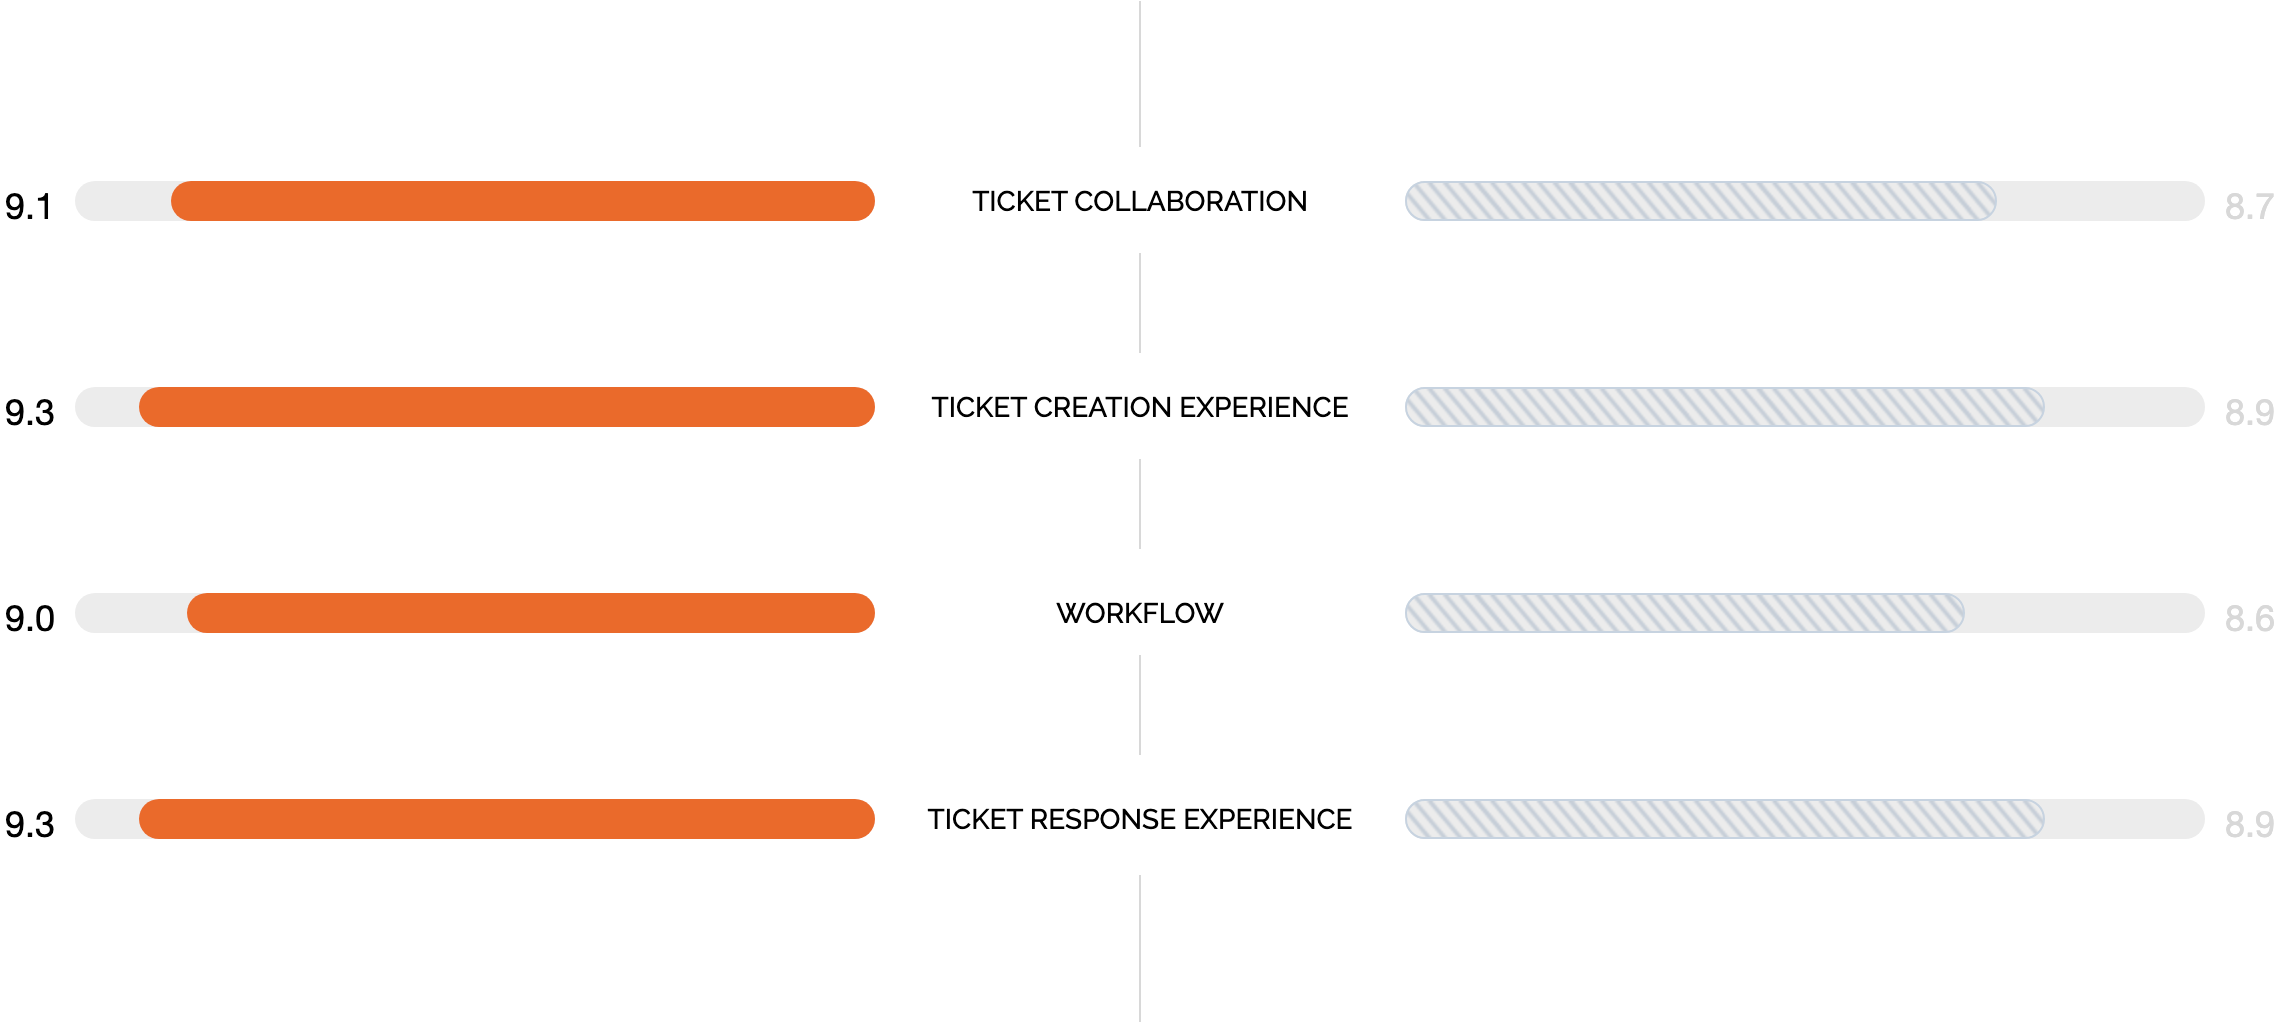 HappyFox vs Zendesk Support - Ticket collaboration, Ticket creation experience, workflow and Ticket response experience